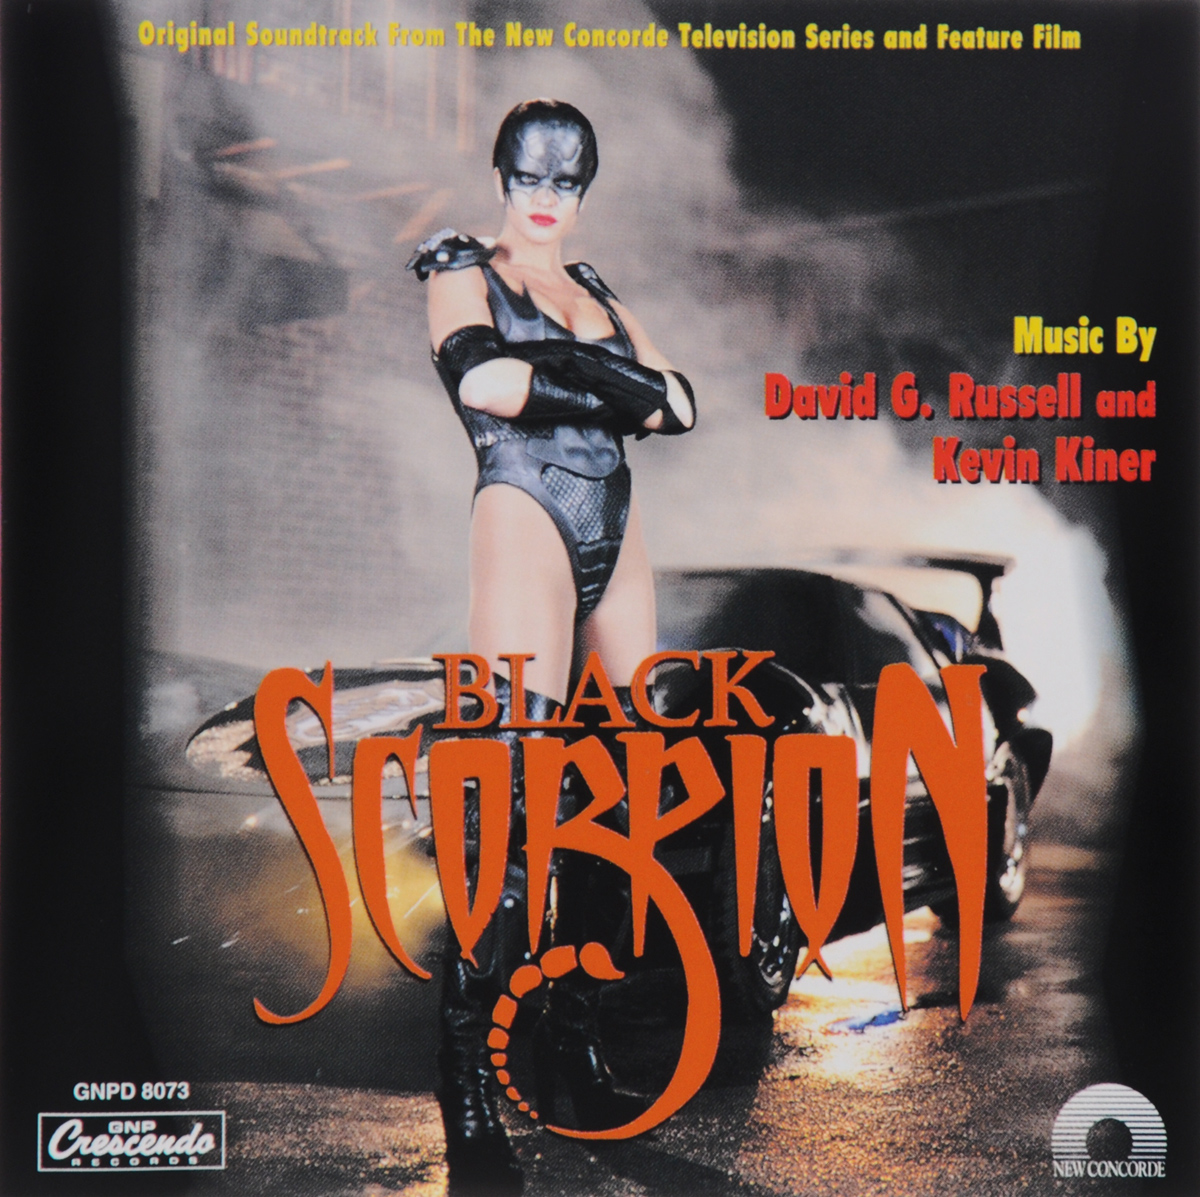 David G. Russel, Kevin Kiner. Black Scorpion. Original Soundtrack